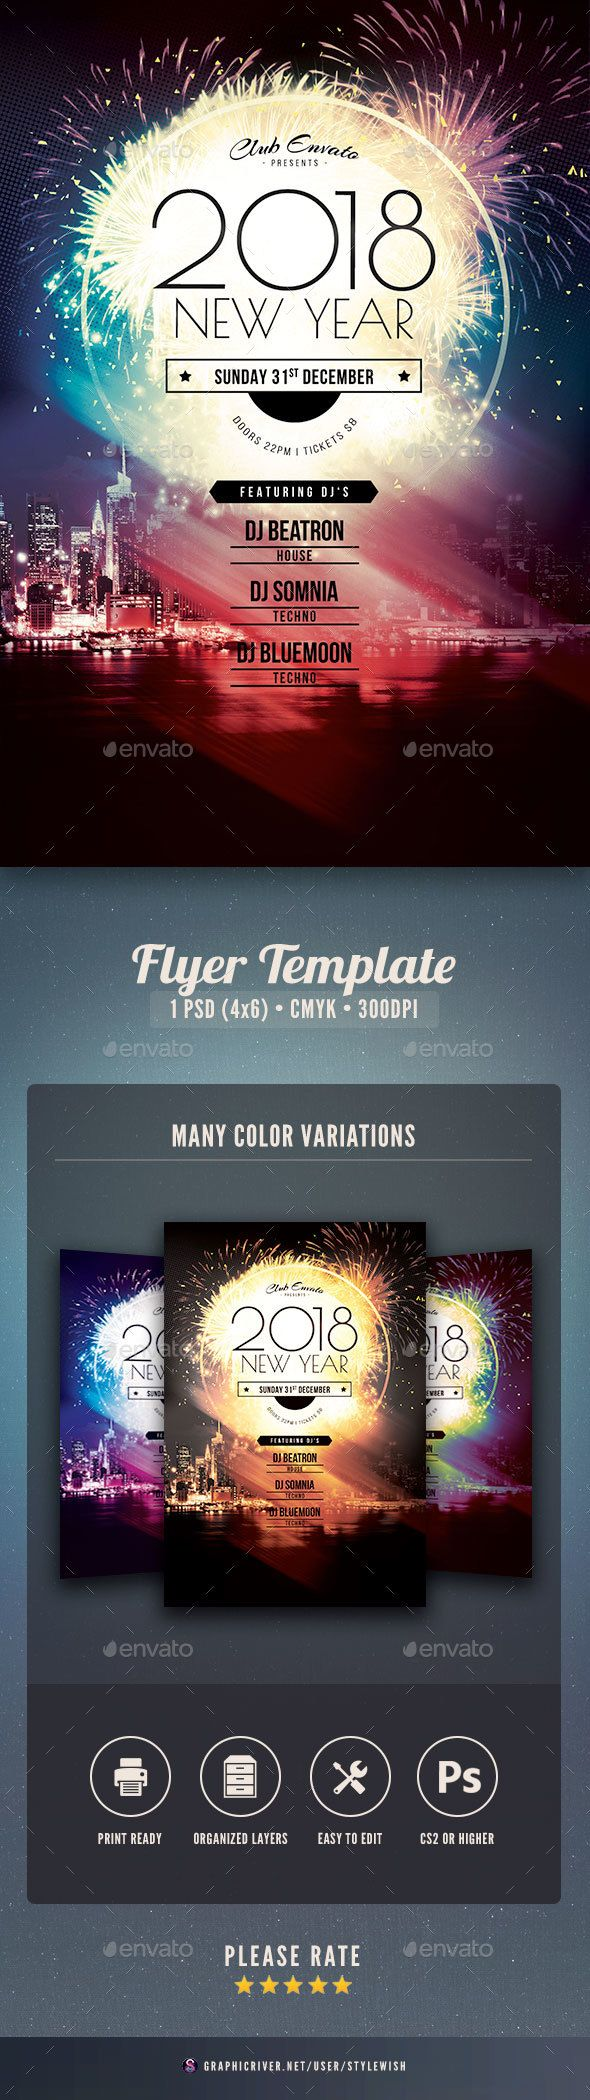 flyer event template